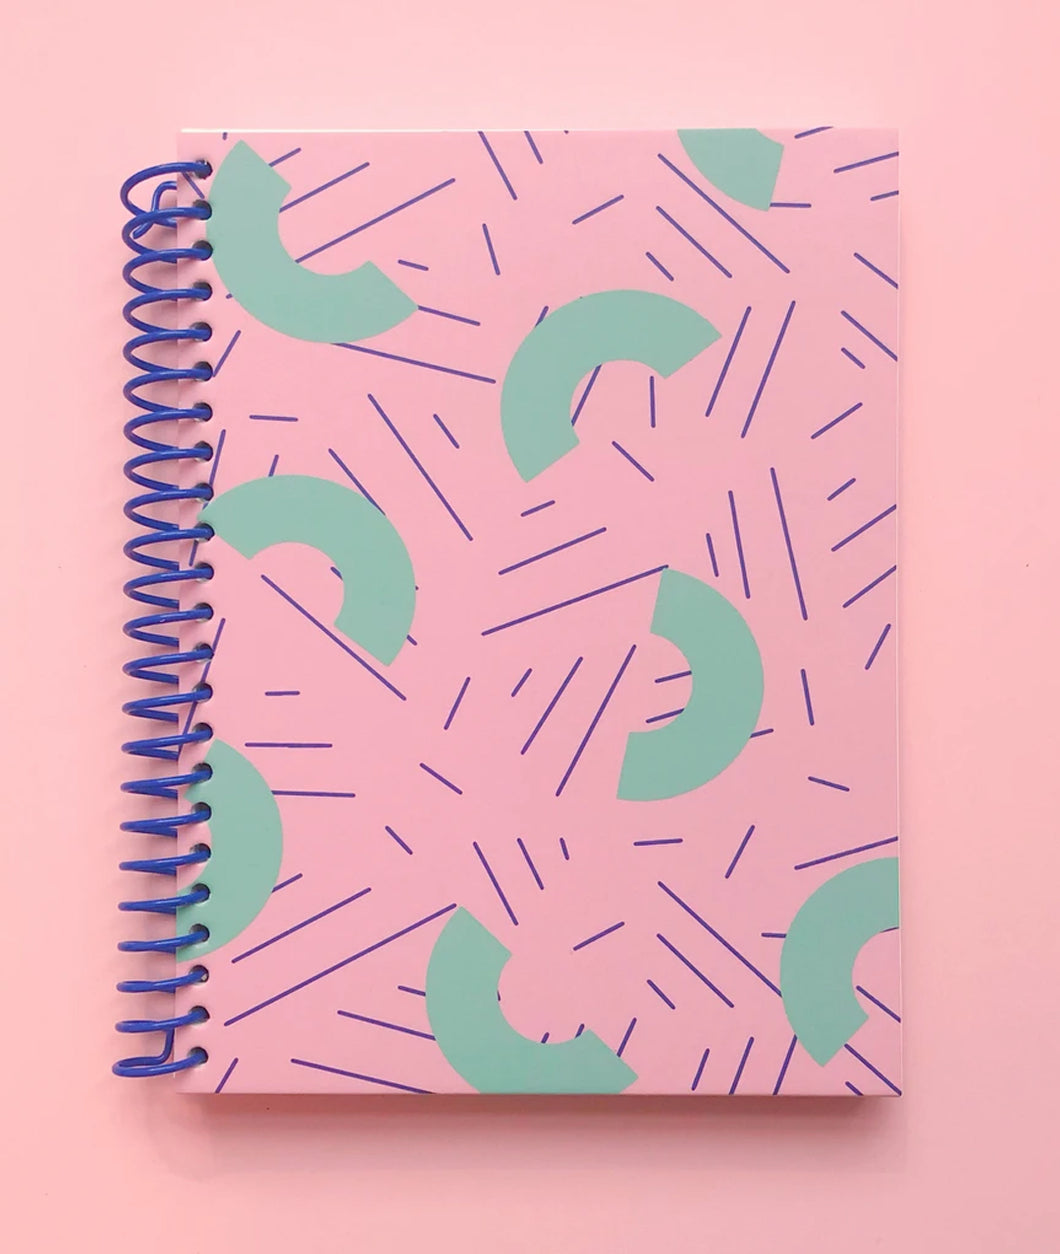 Pictured against a light pink background is a pink notebook. The notebook features a blue coil binding and light pink half moon shaped